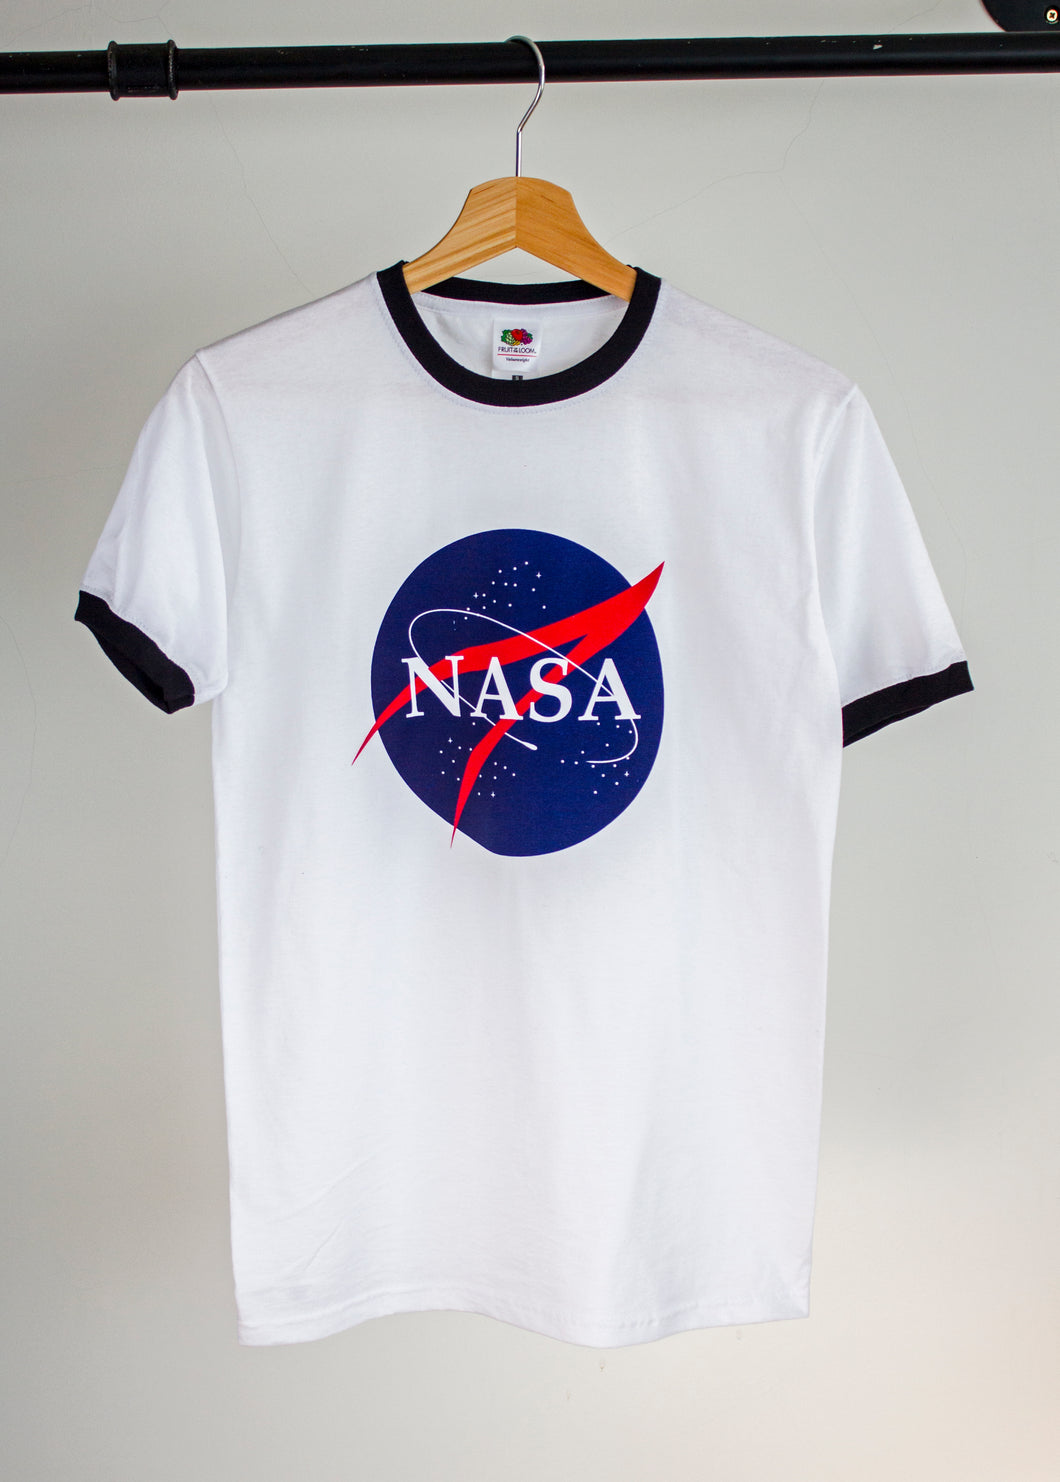 nasa white ringer tshirt screen printed